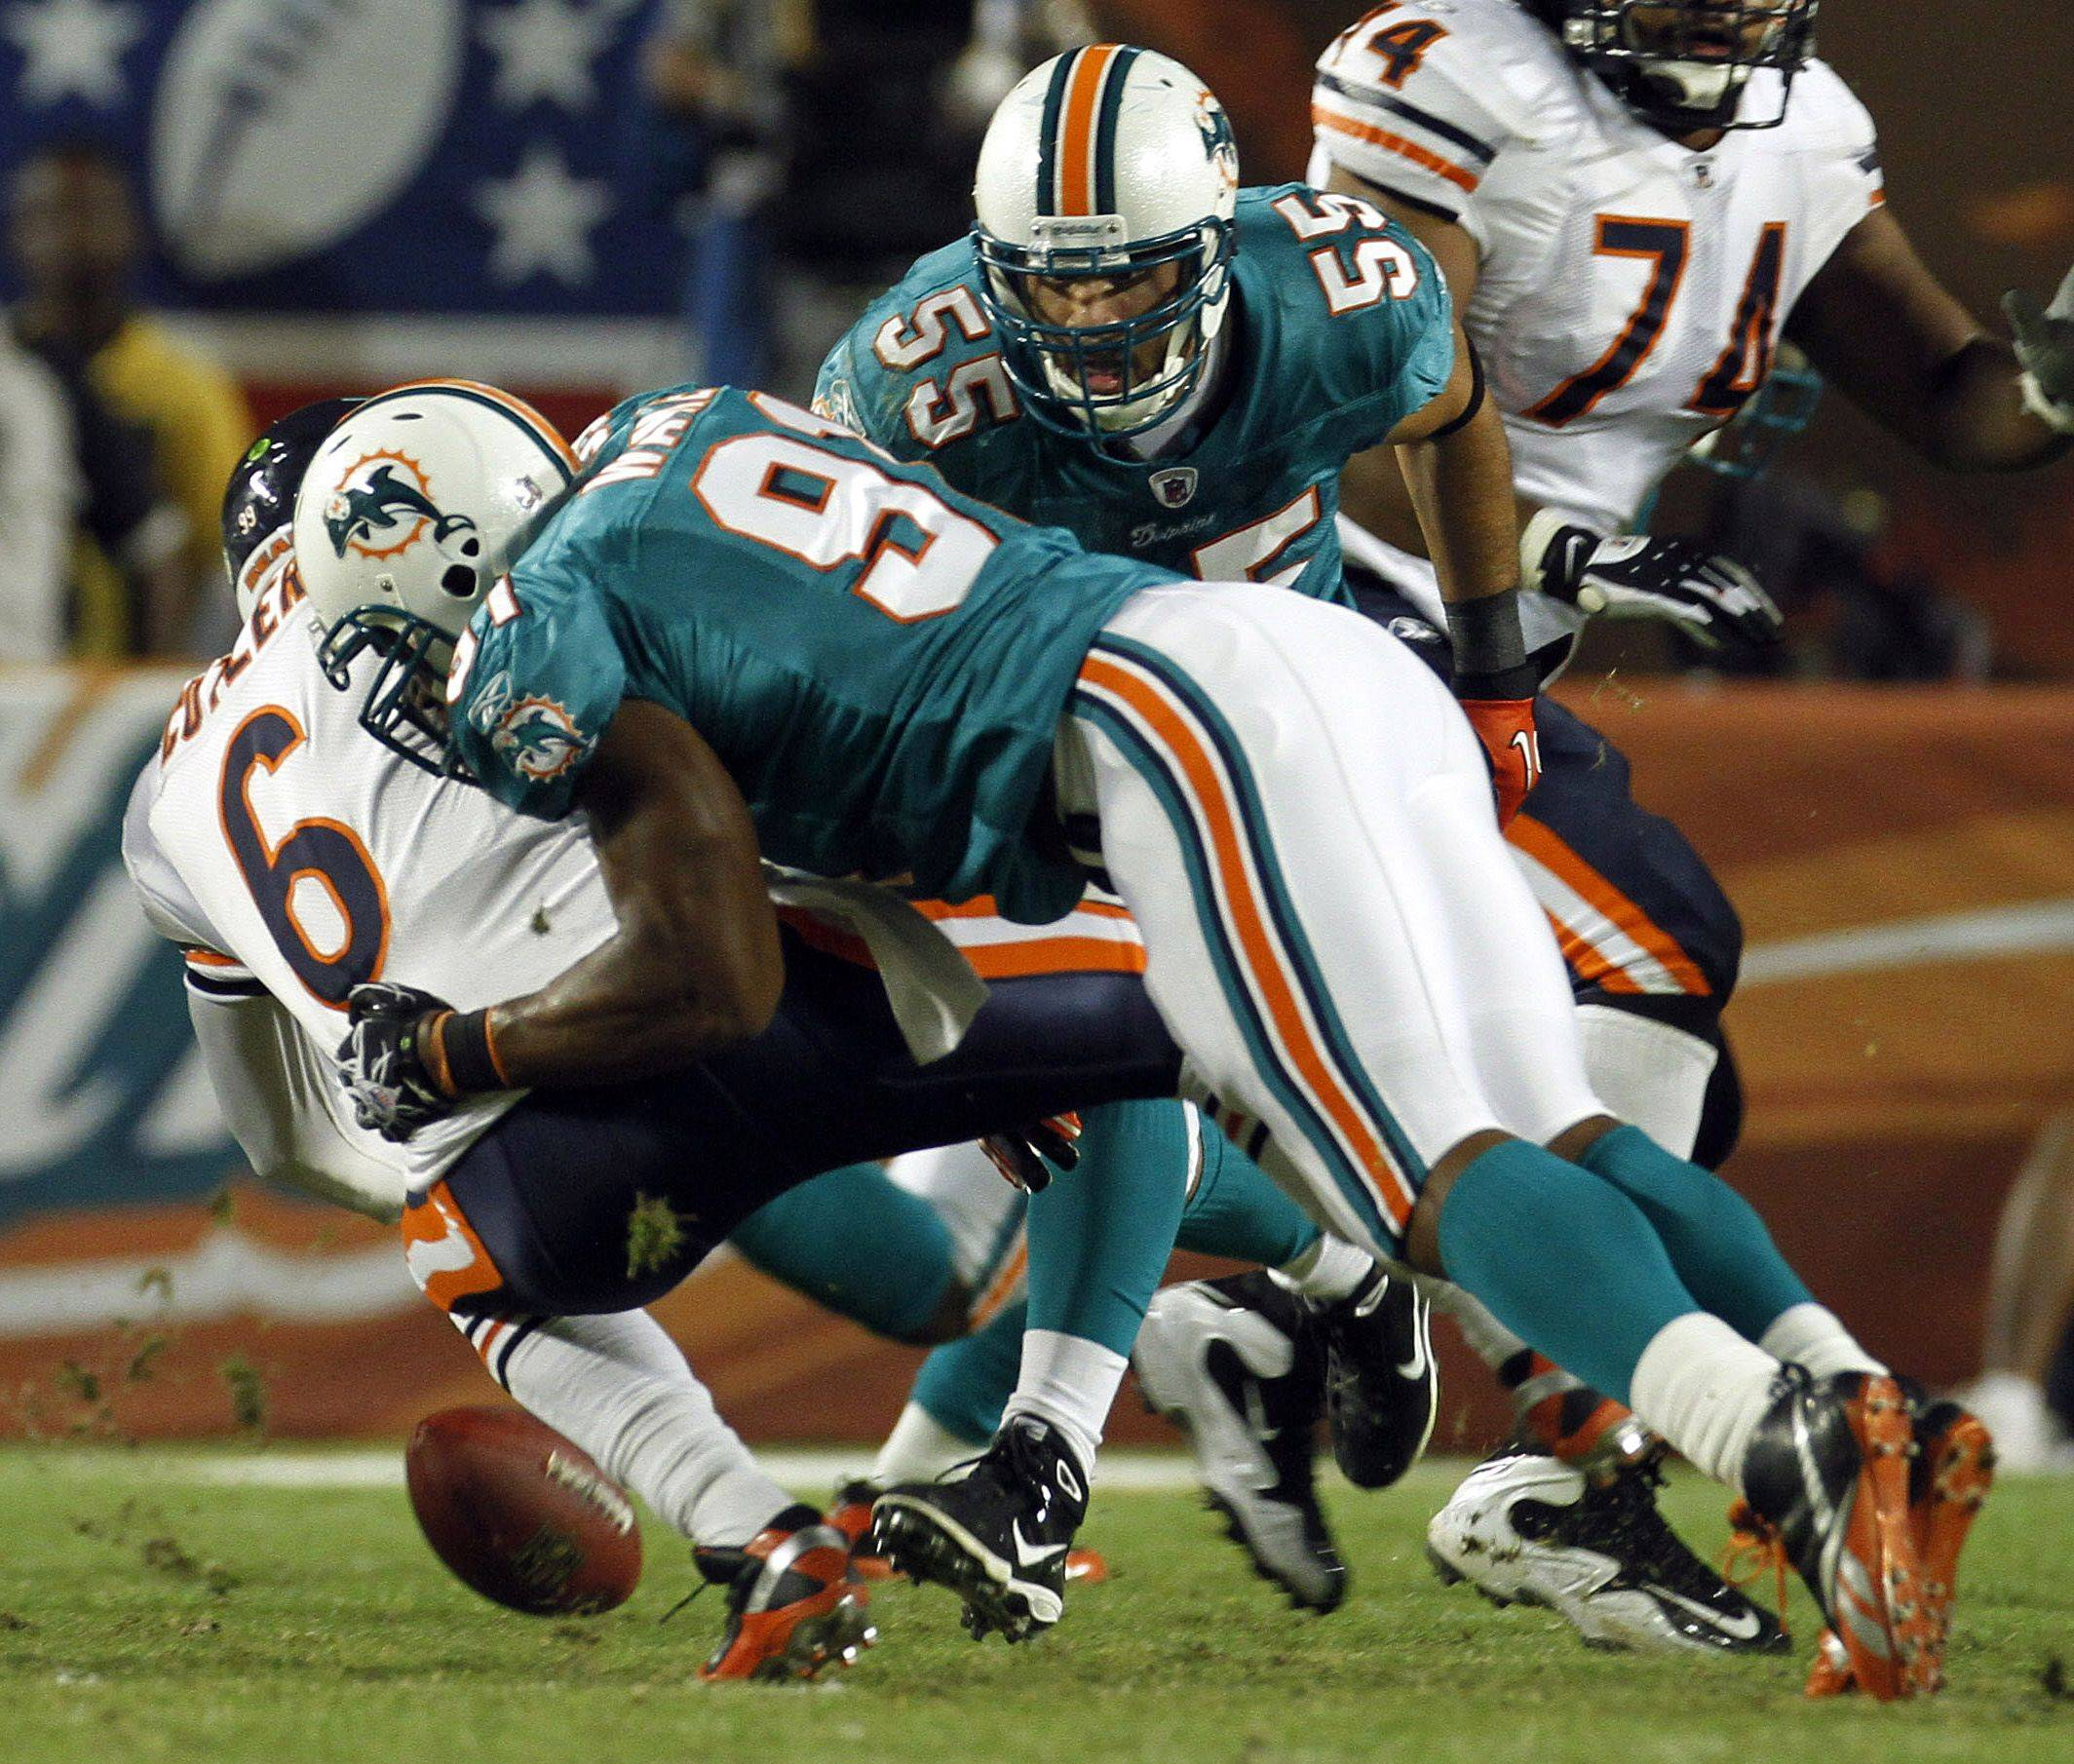 Miami Dolphins linebacker Cameron Wake sacks Chicago Bears quarterback Jay Cutler during the first quarter .